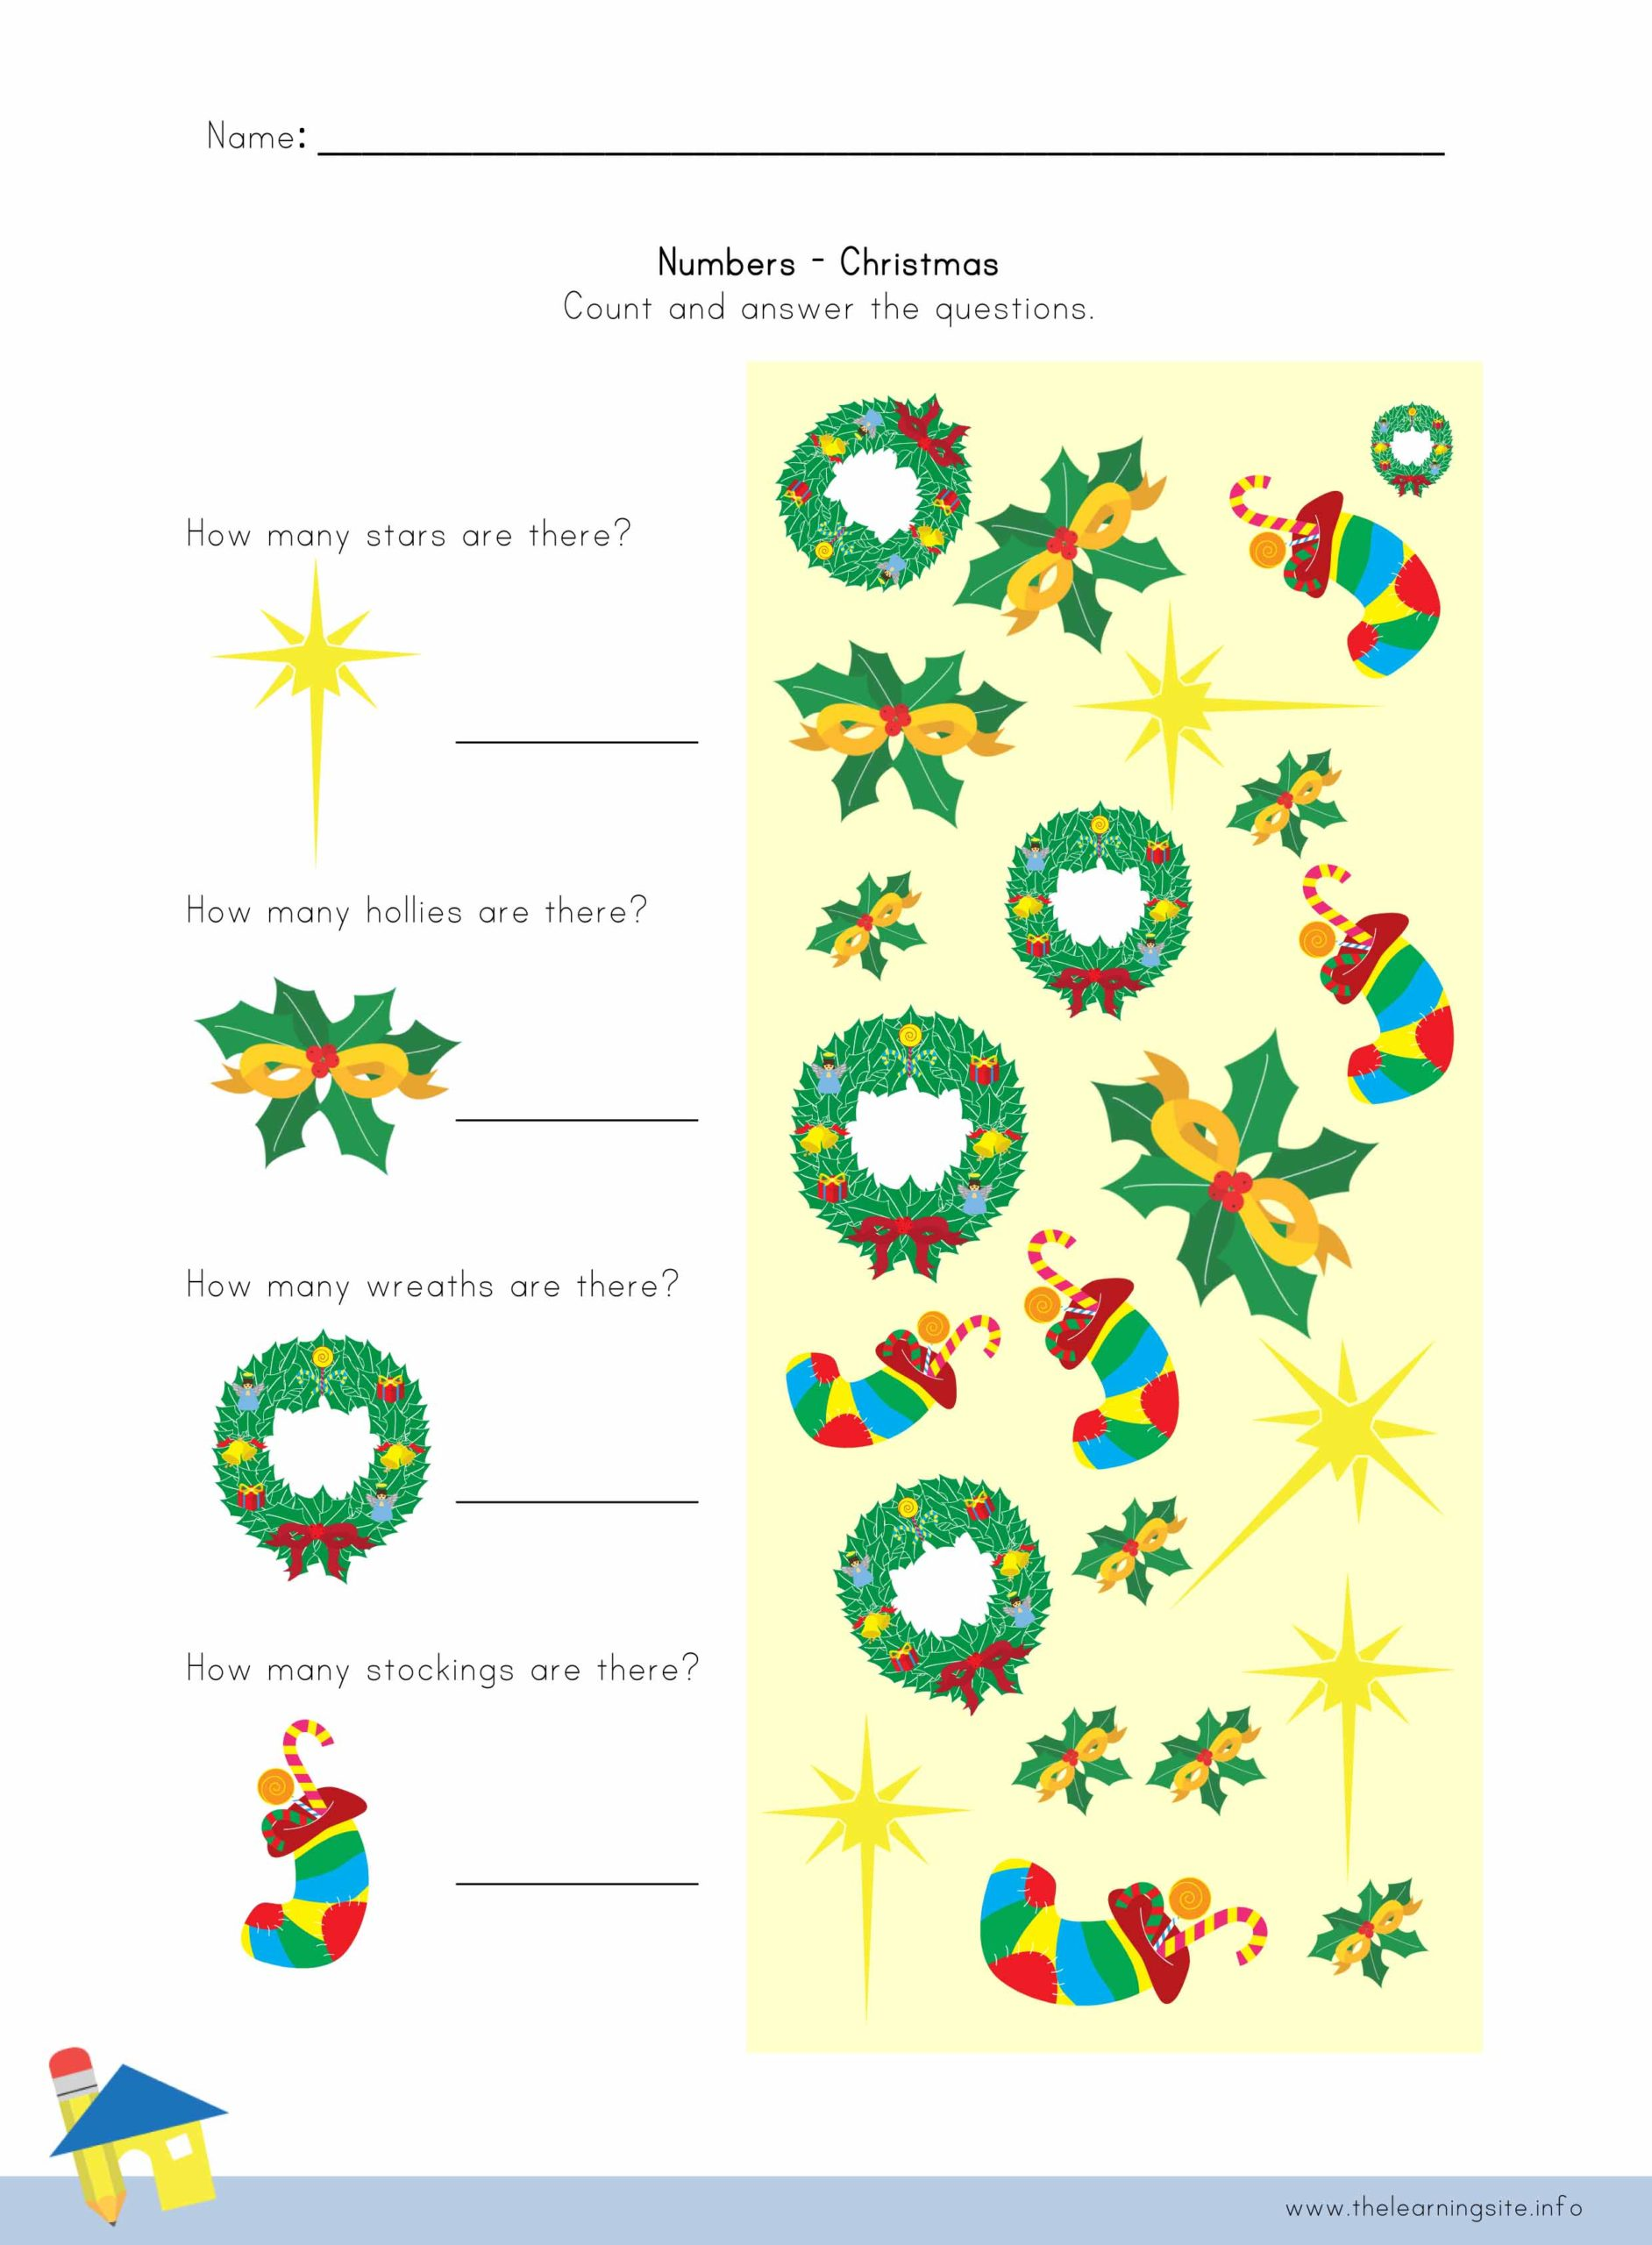 Christmas Number Worksheet 3 The Learning Site